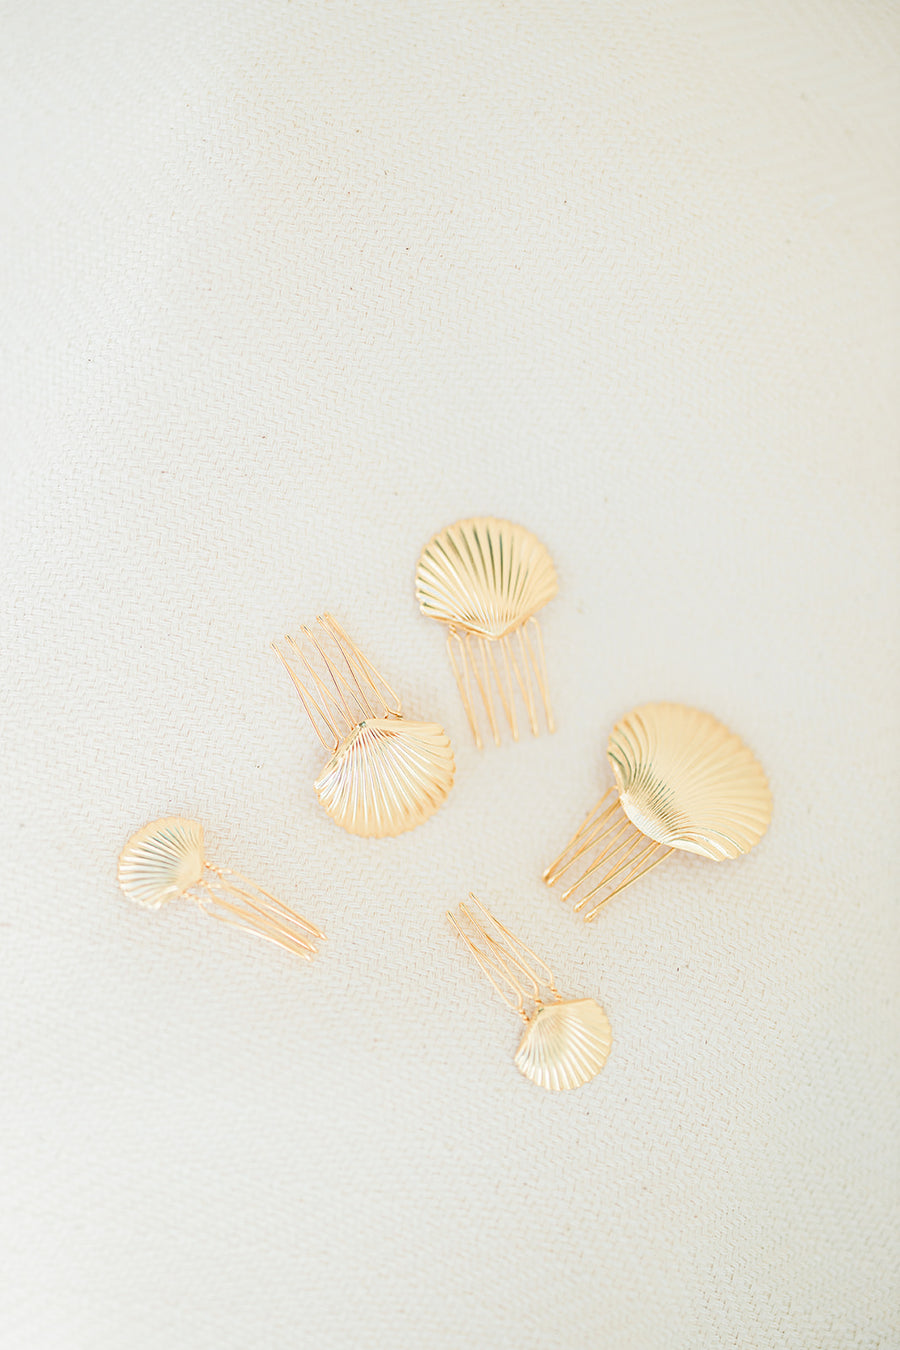 She Sells Petite Comb Set of 5 - The Beach Bride by Chic Parisien, a destination for beach weddings, bachelorettes and honeymoons